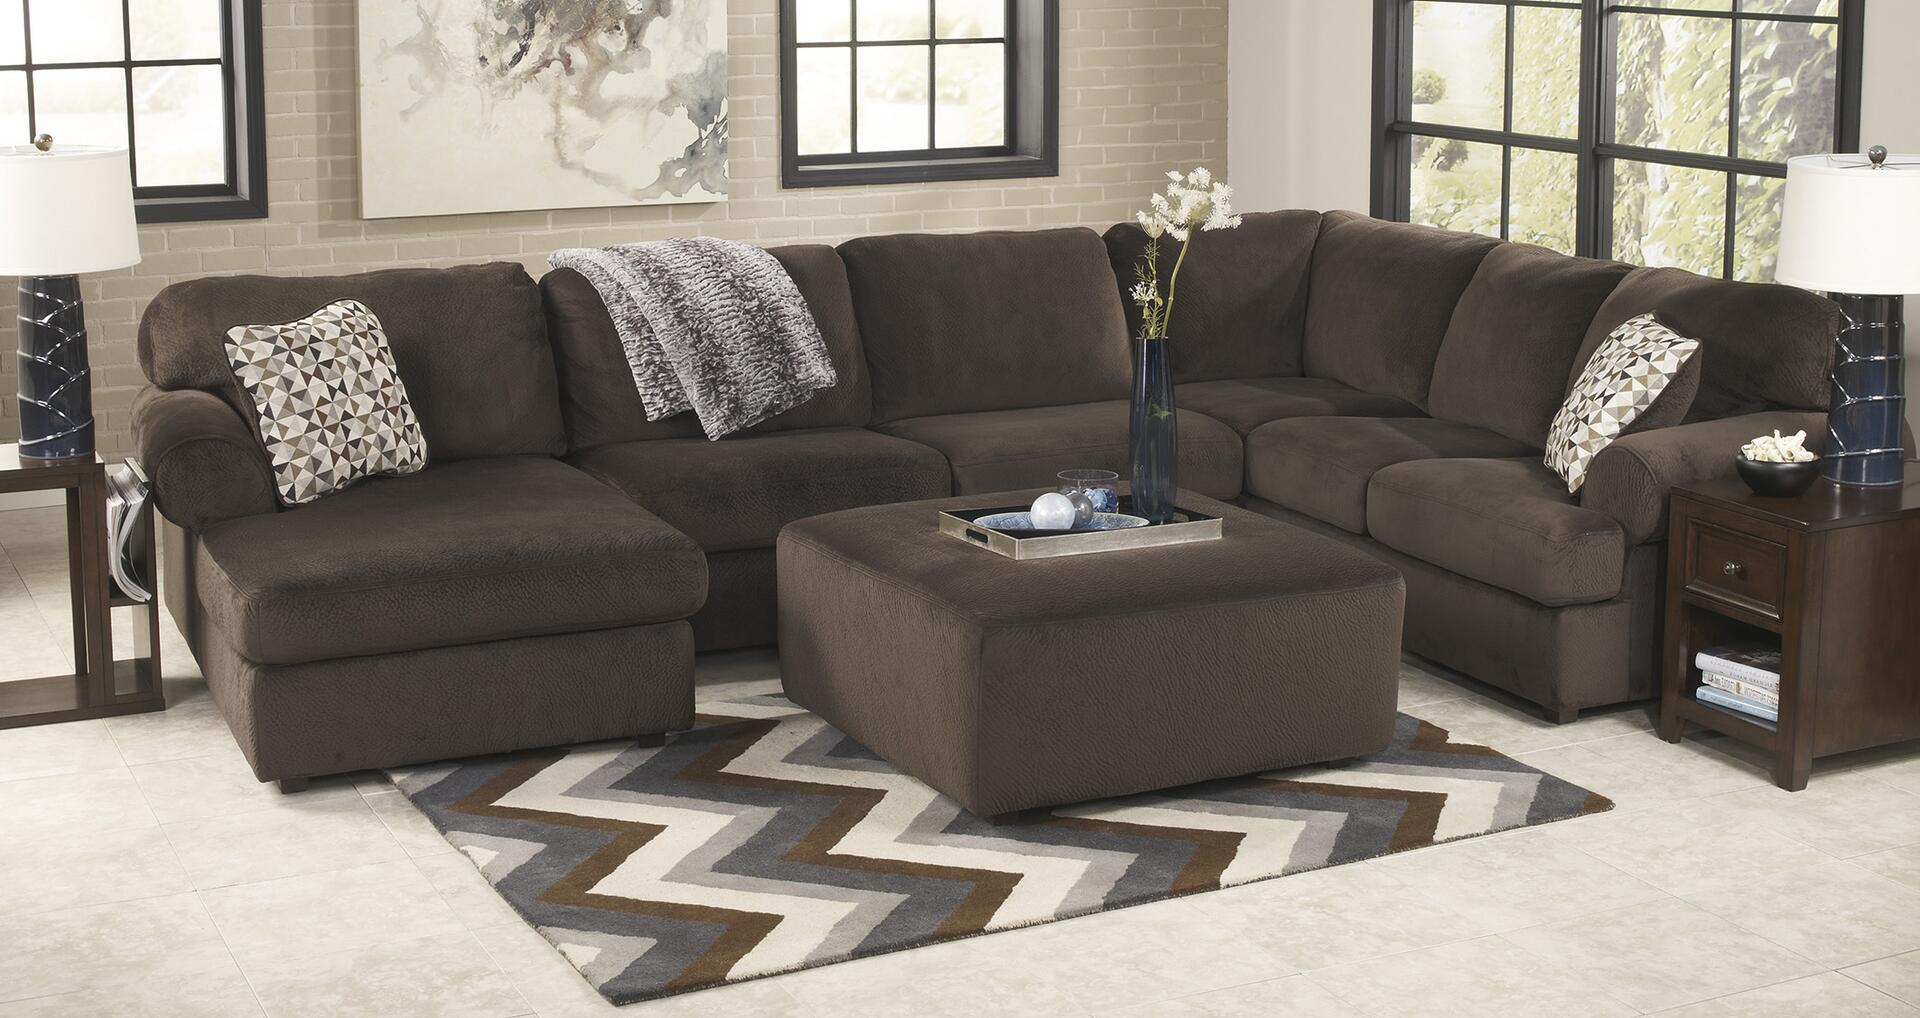 ... Signature Design by Ashley Jessa Place Sectional Sofa with Optional Ottoman and Accessories ... : jessa sectional - Sectionals, Sofas & Couches